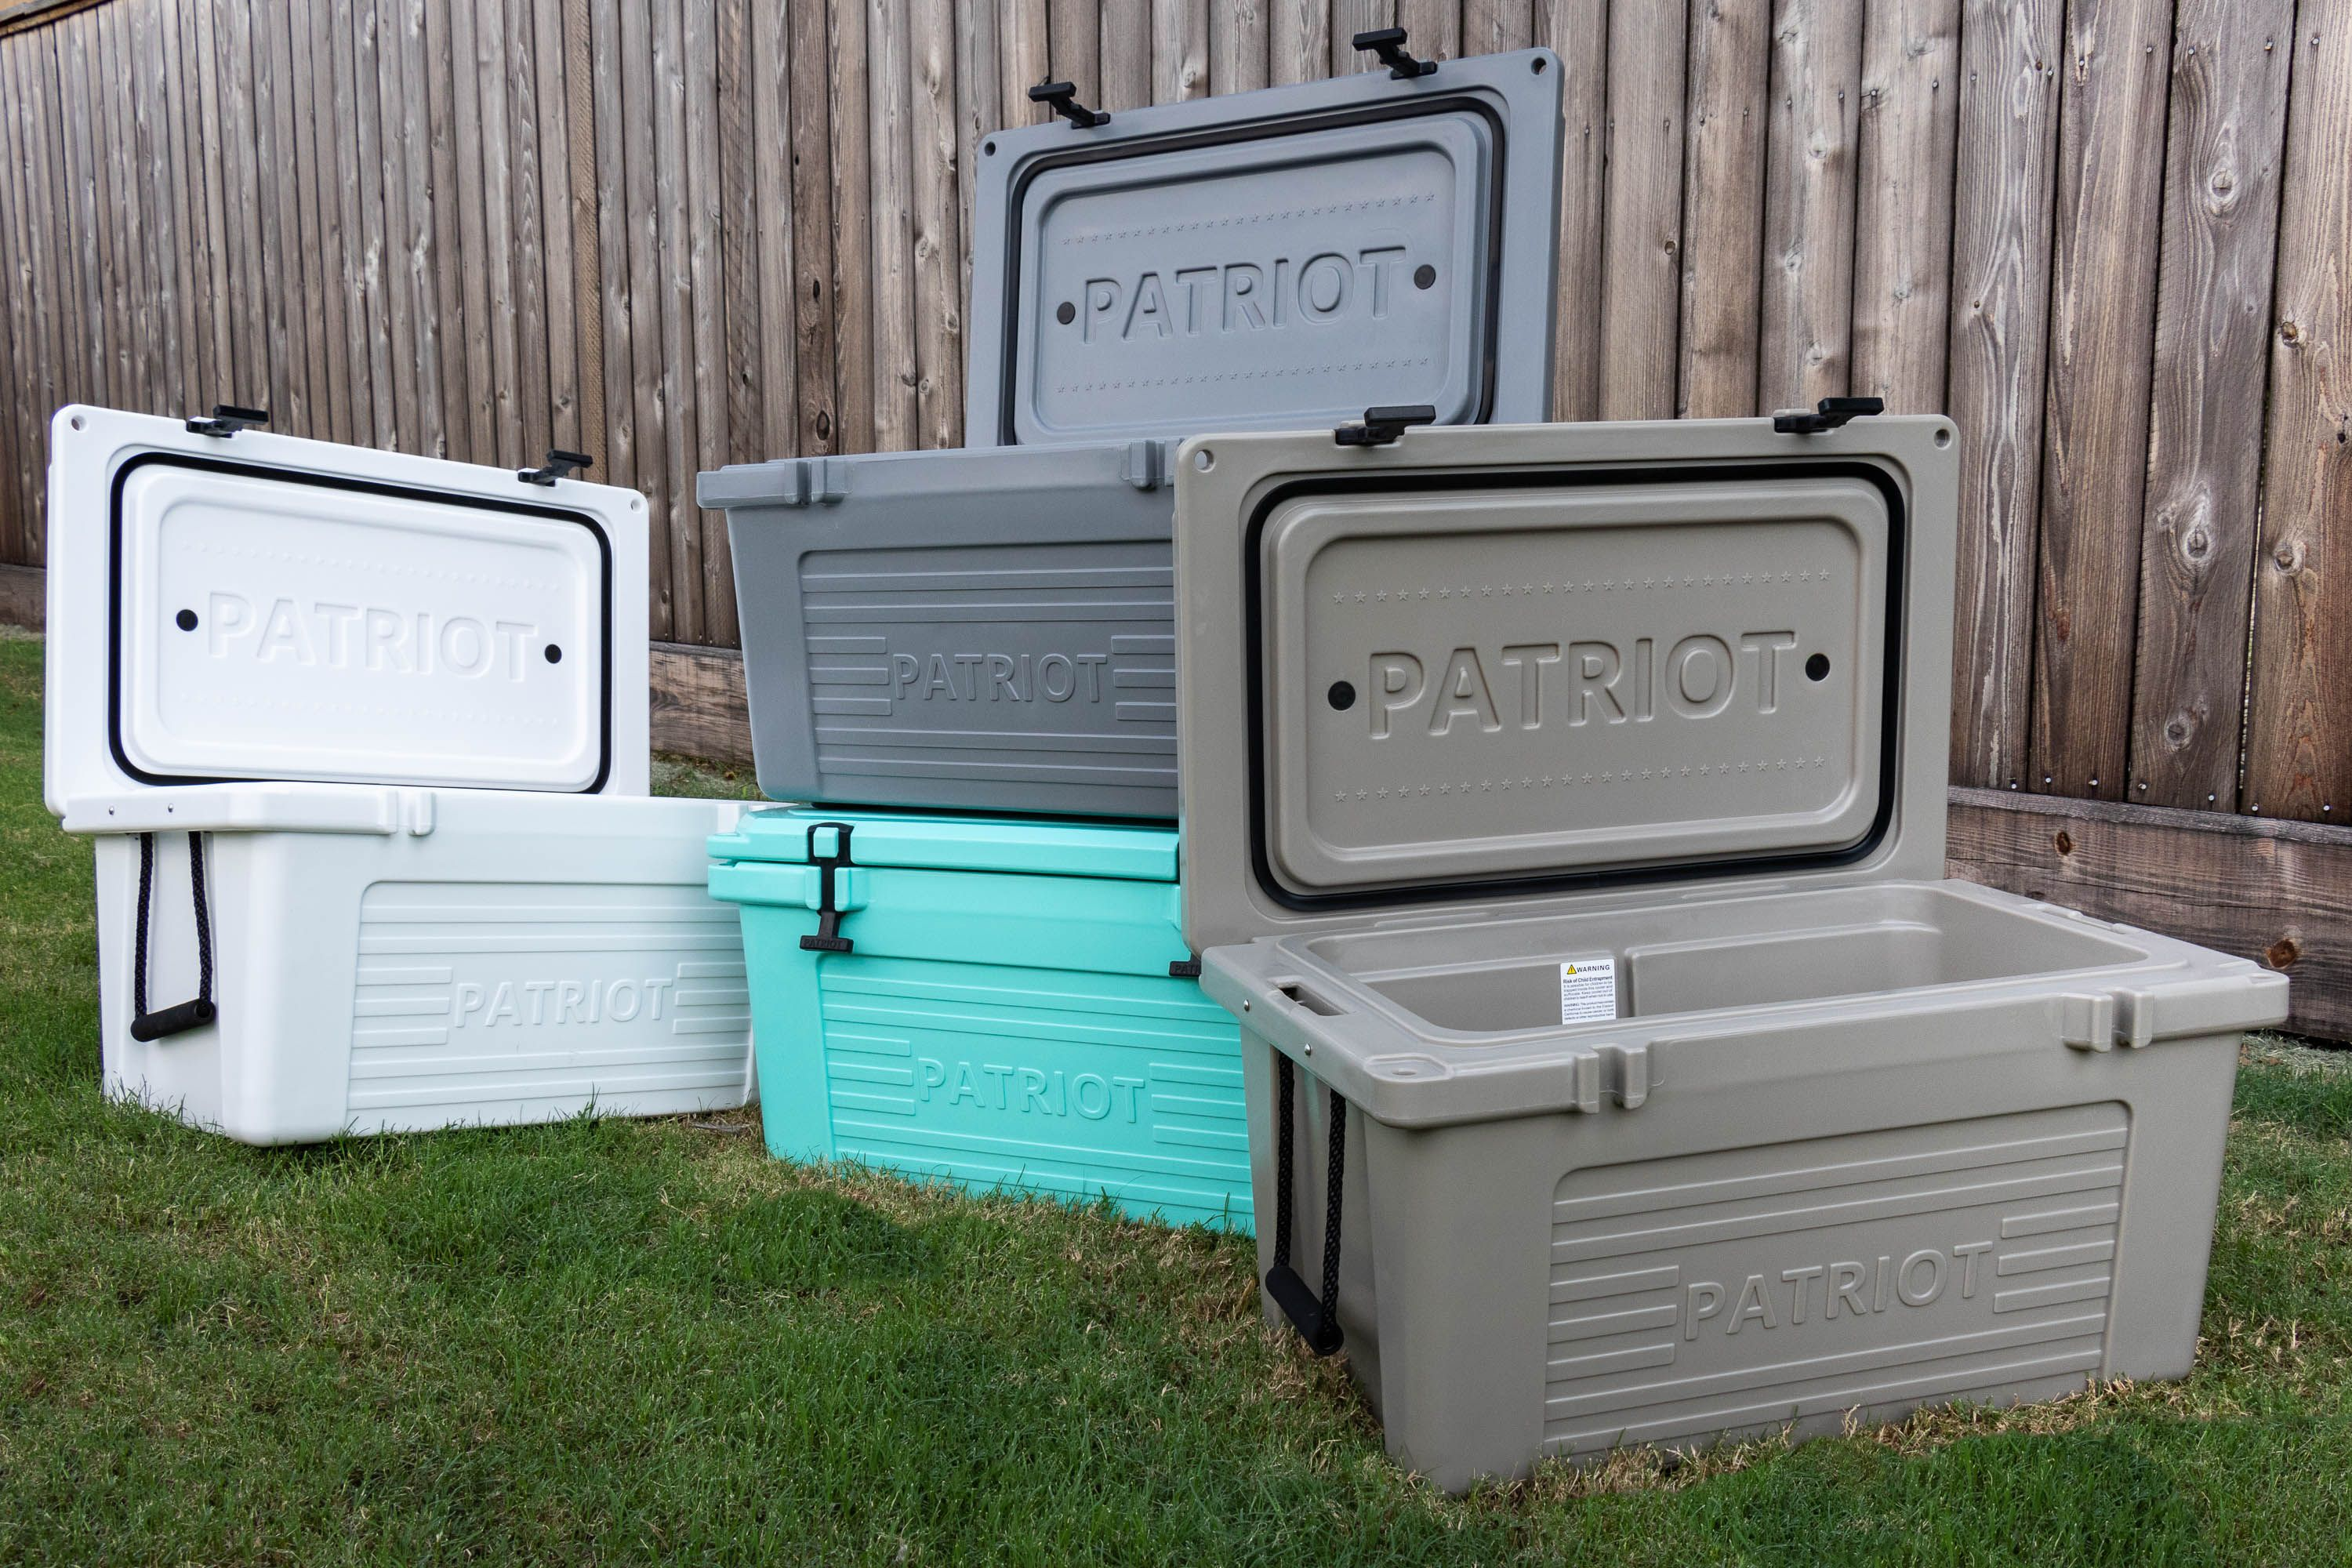 Our 45qt Patriot Coolers are available in 4 fabulous